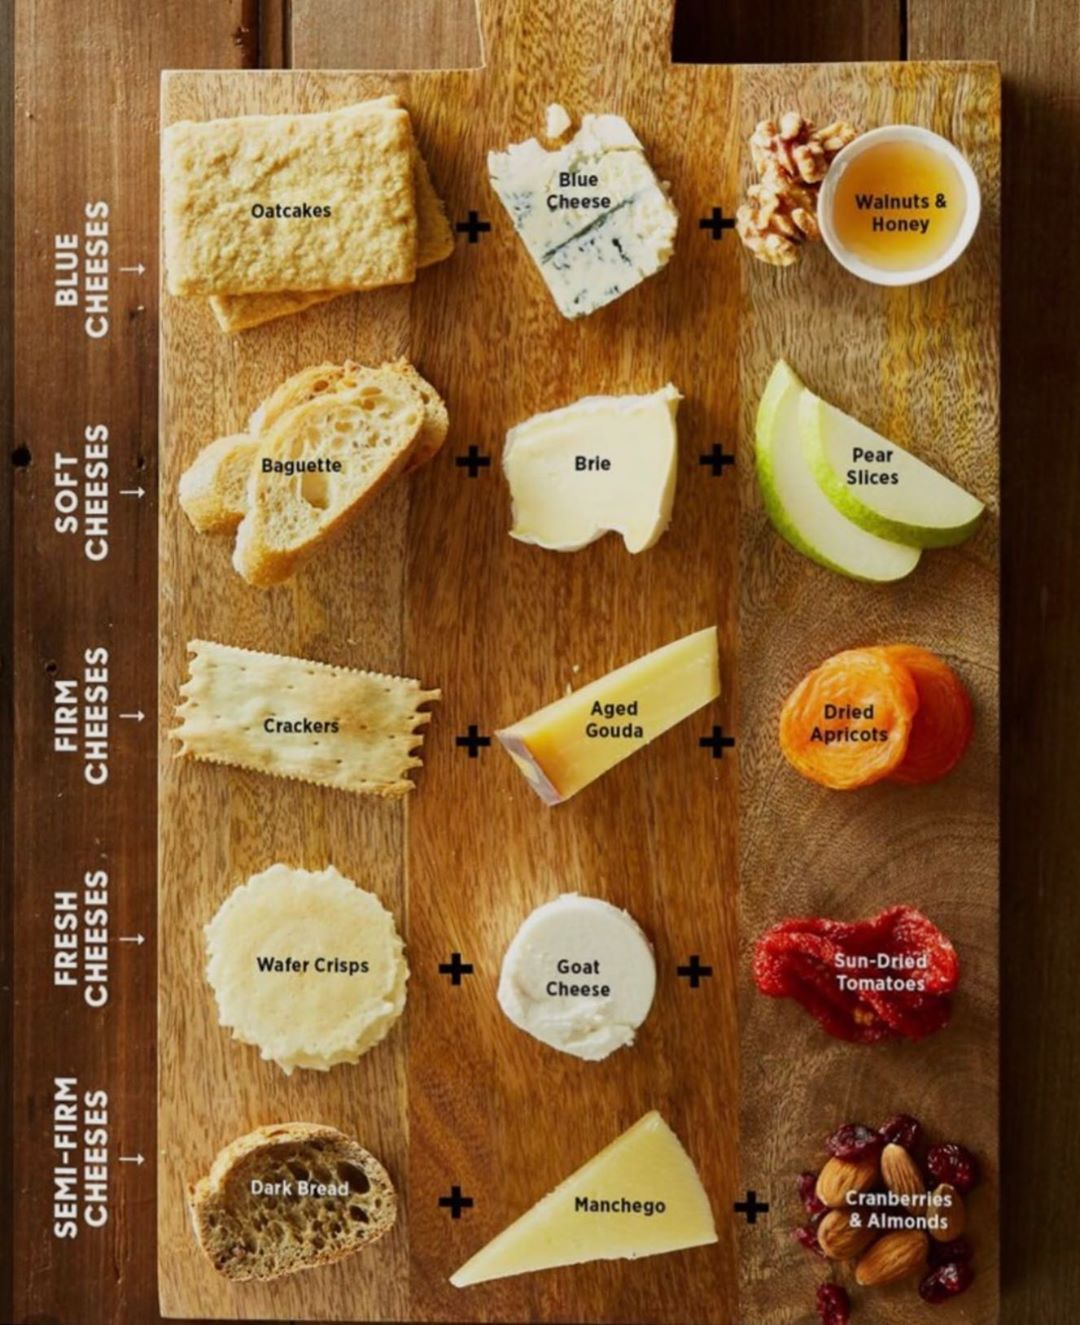 """The Dimpled Cheese on Instagram: """"Found this fun and easy-to-follow cheese pairing chart @pinterest �Altho I'd rather do a baguette with blue cheese and honey instead�…"""""""